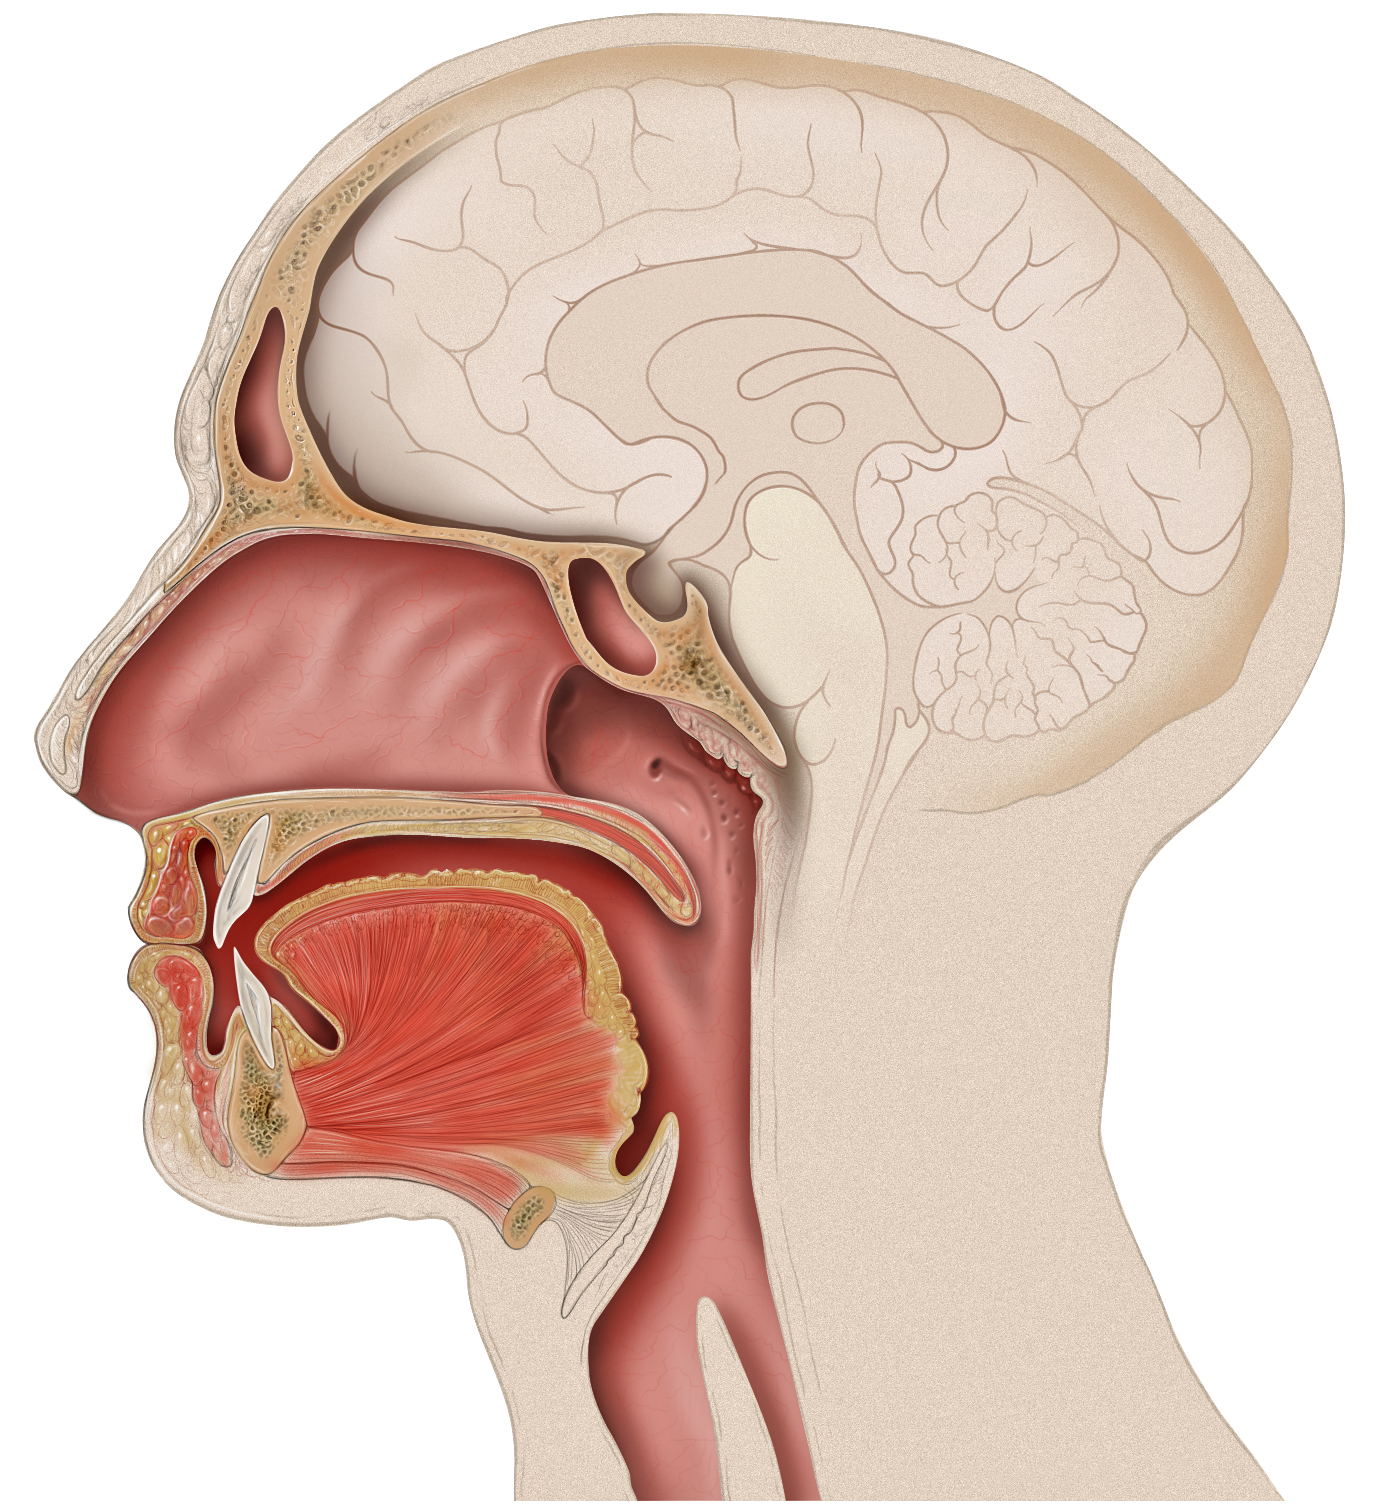 File:Head lateral mouth anatomy.jpg - Wikimedia Commons